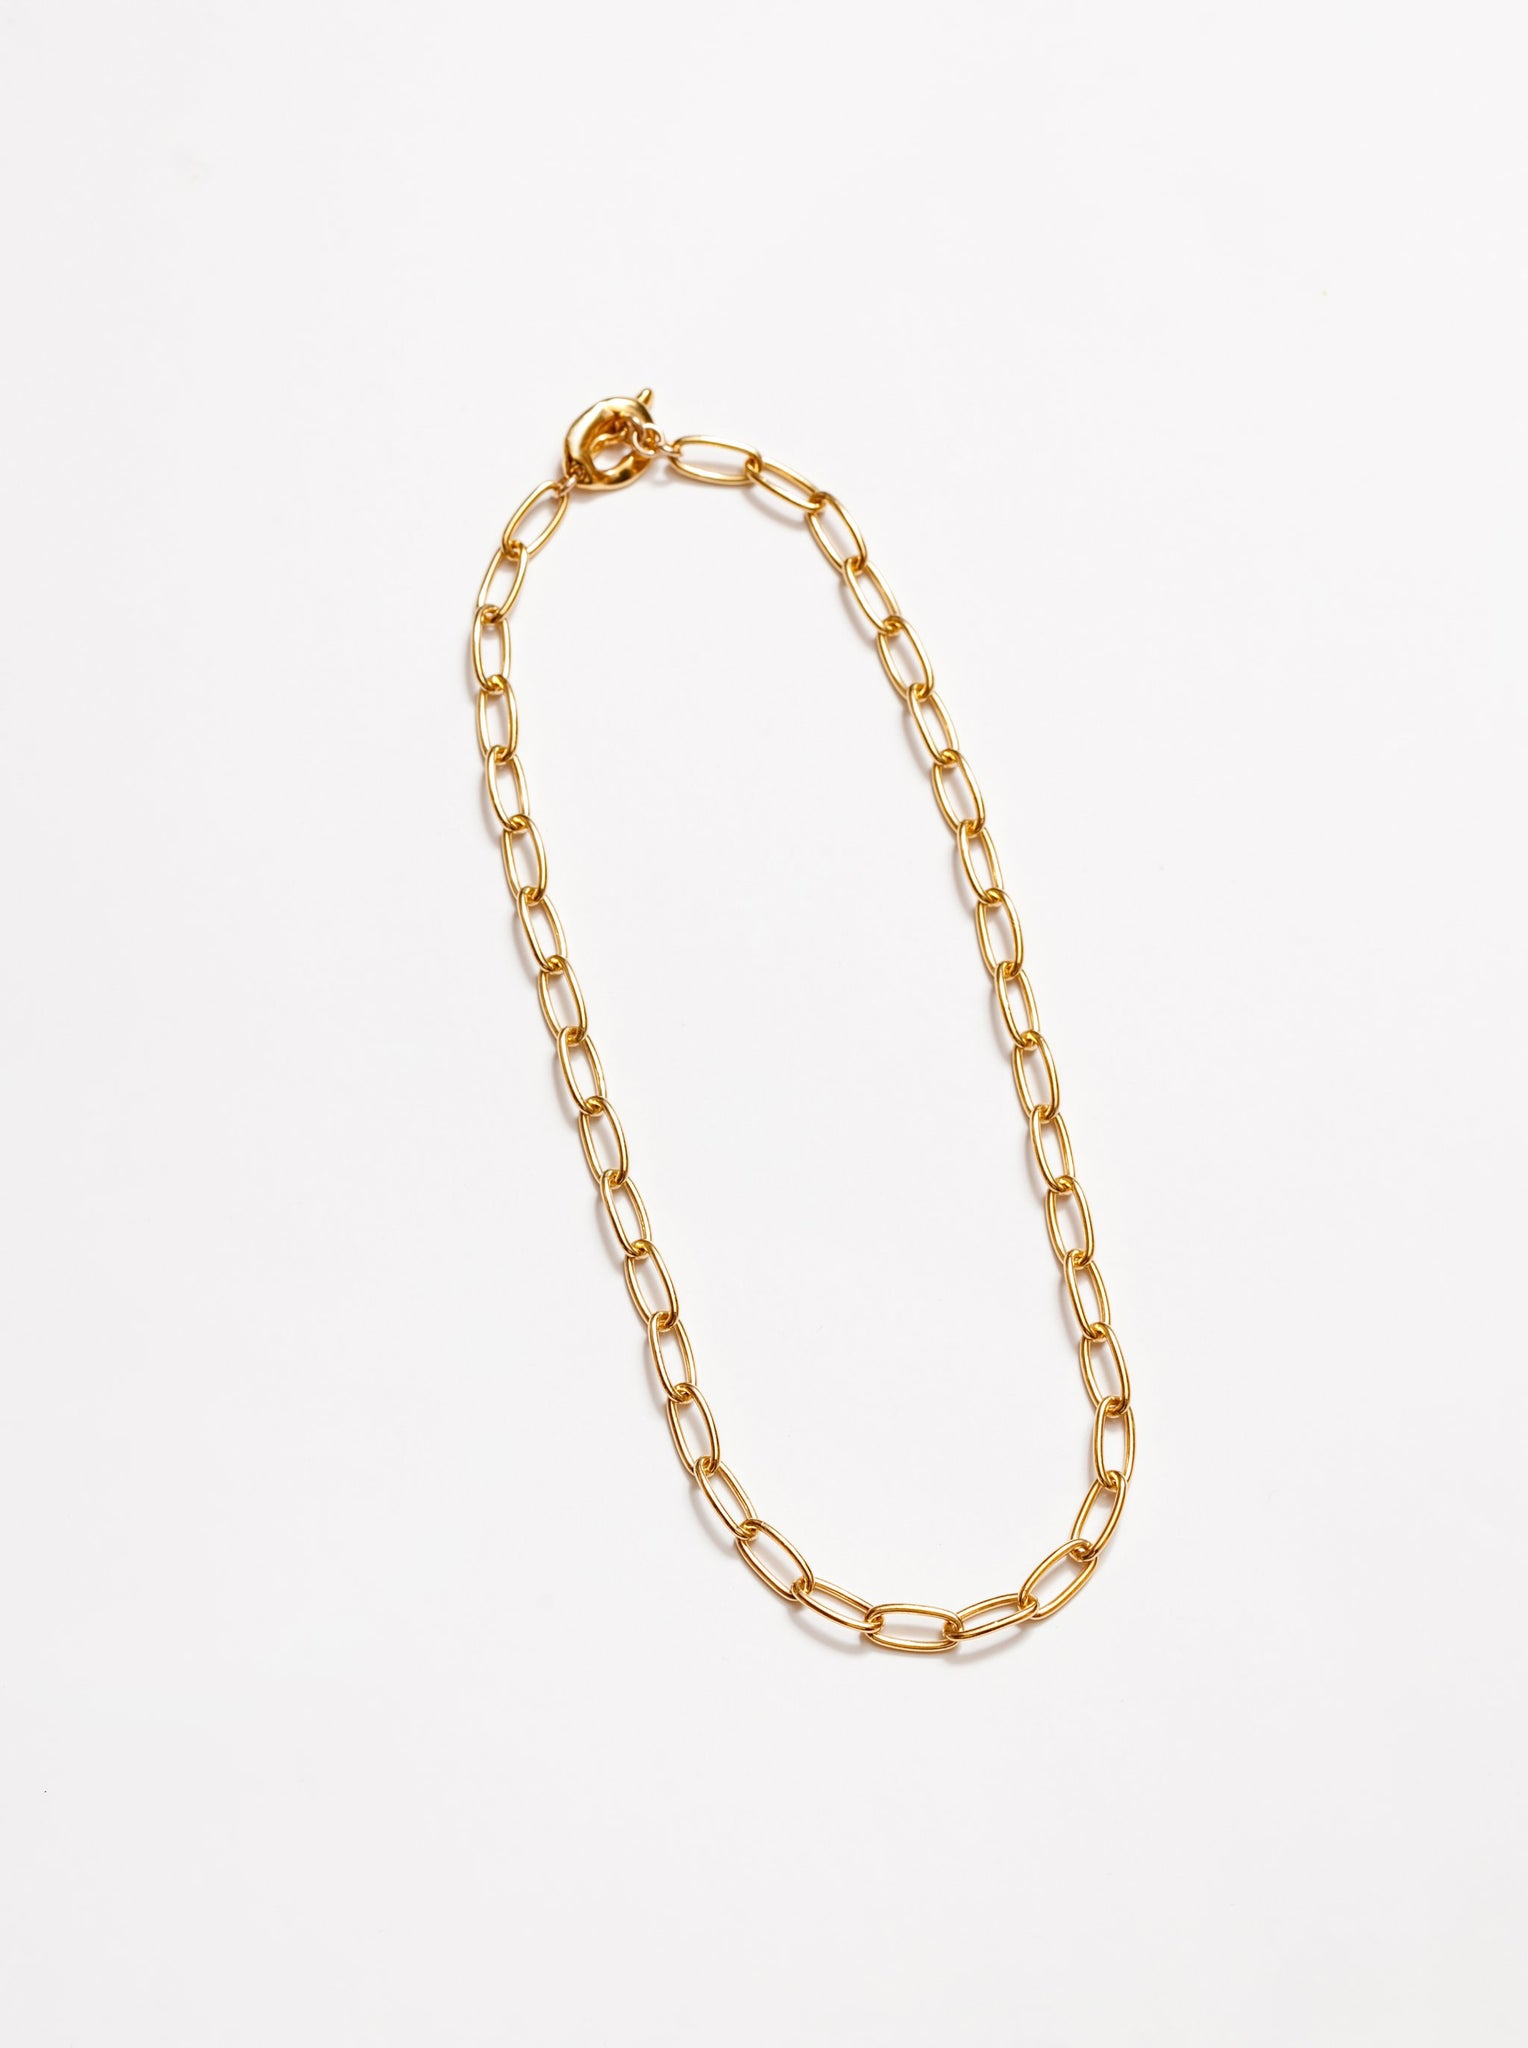 talia necklace in gold.